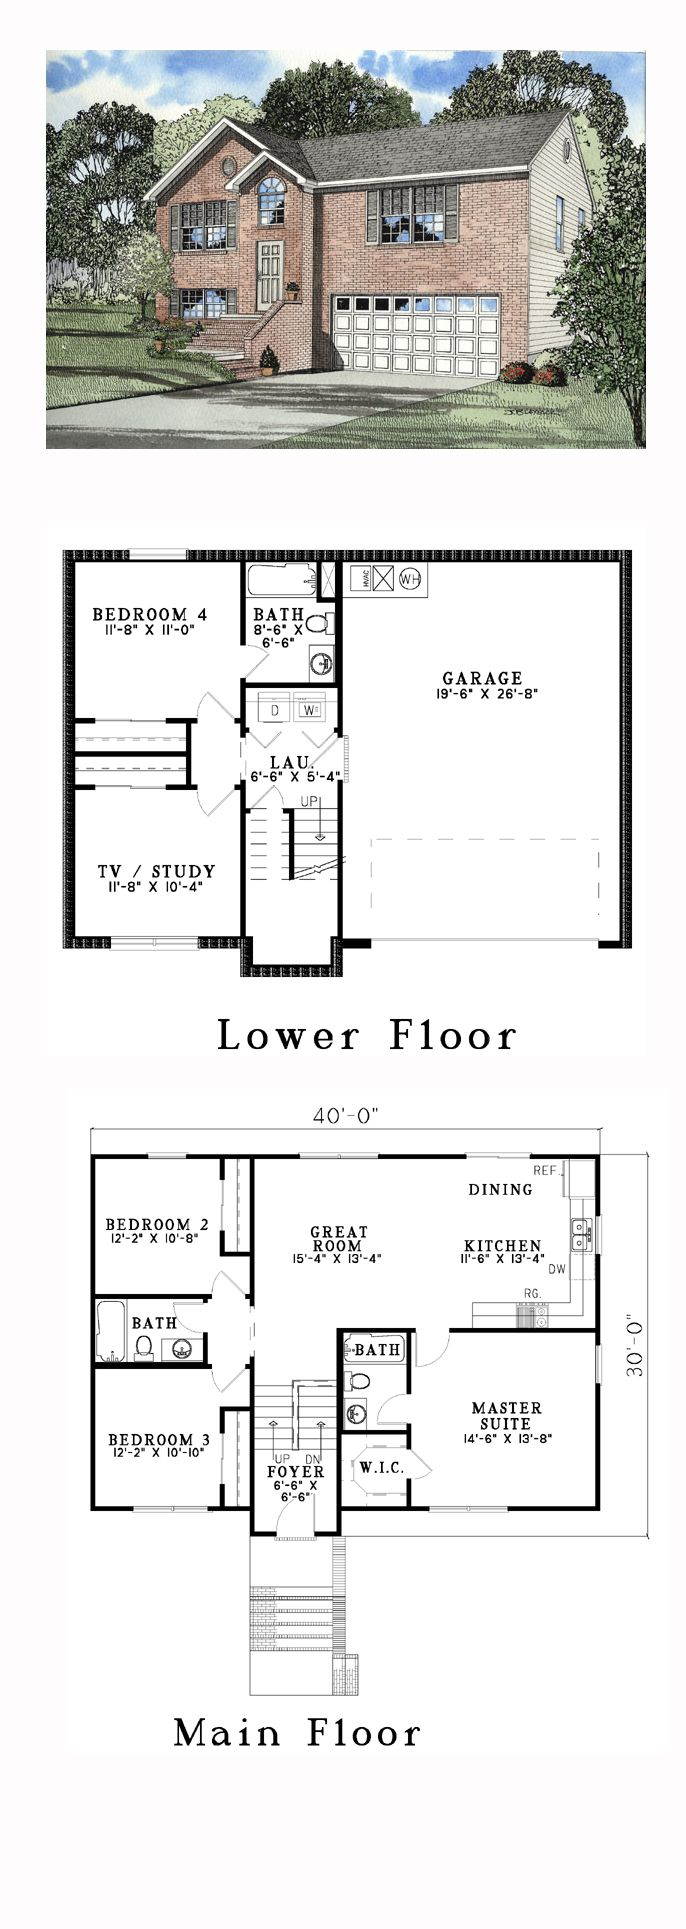 Narrow Lot Style House Plan 61212 With 4 Bed 3 Bath 2 Car Garage Split Level Floor Plans Split Level House Plans Modular Home Floor Plans